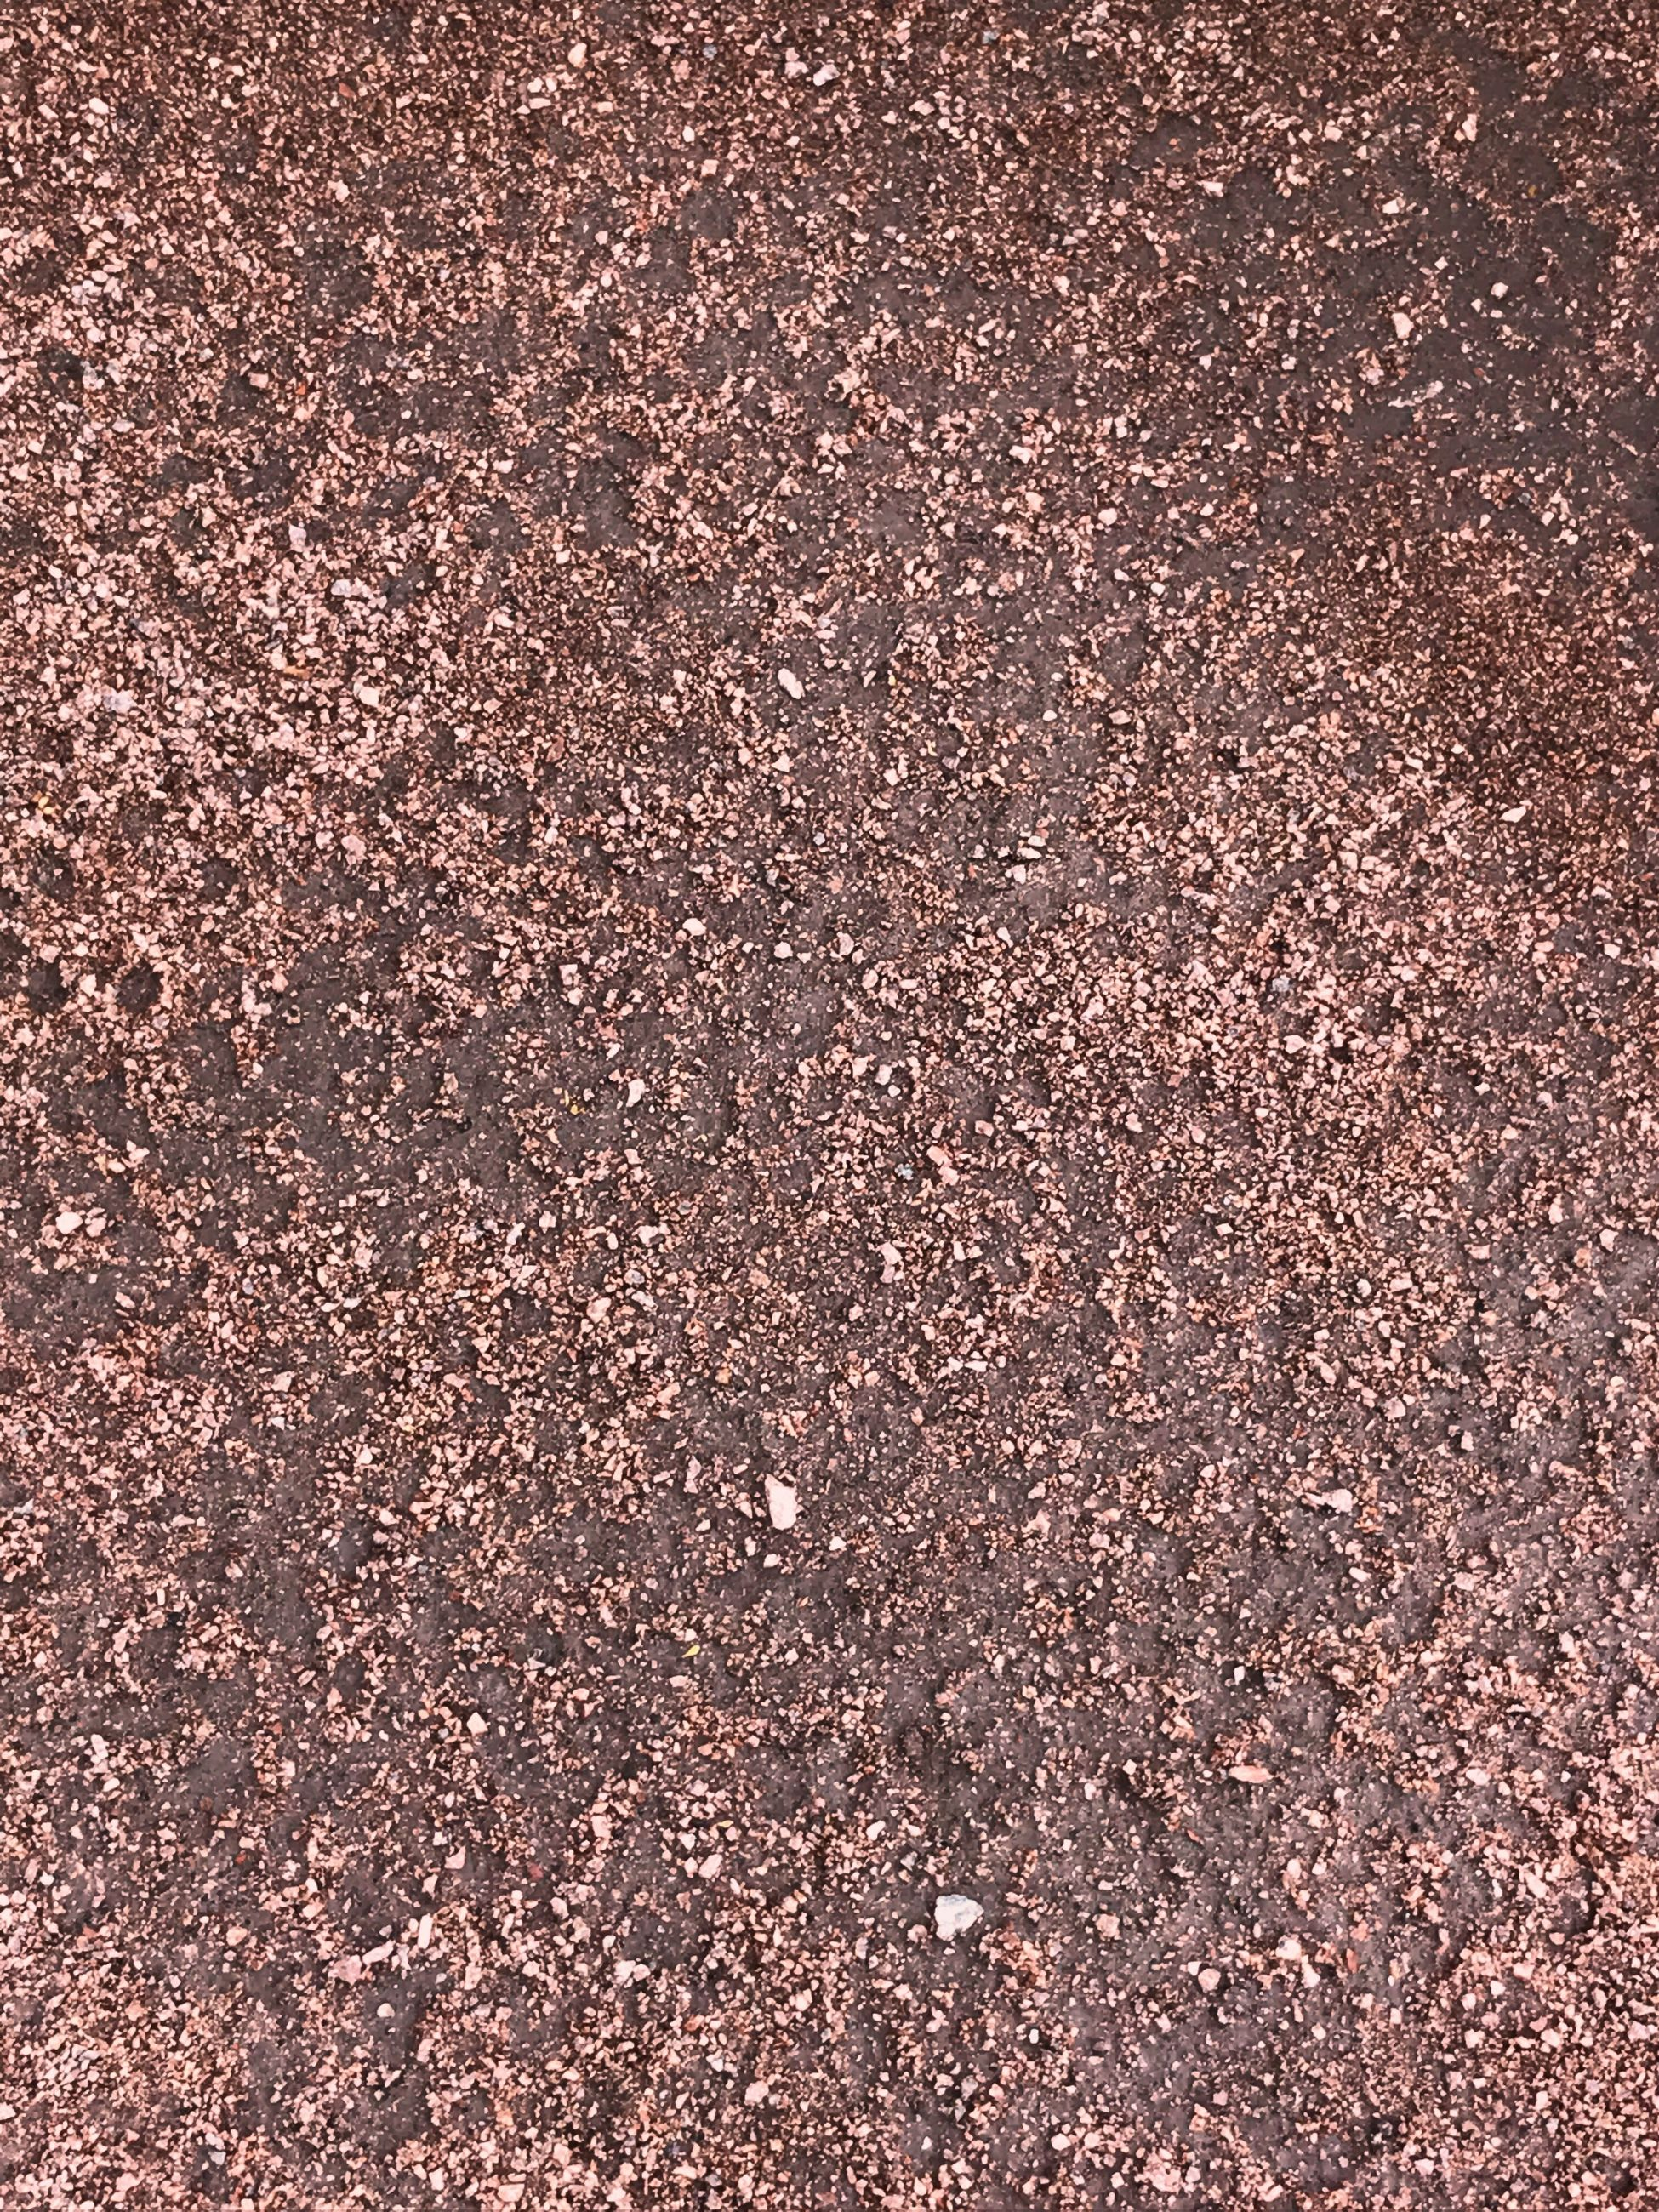 backgrounds, abstract, full frame, textured, brown, pattern, no people, close-up, nature, outdoors, day